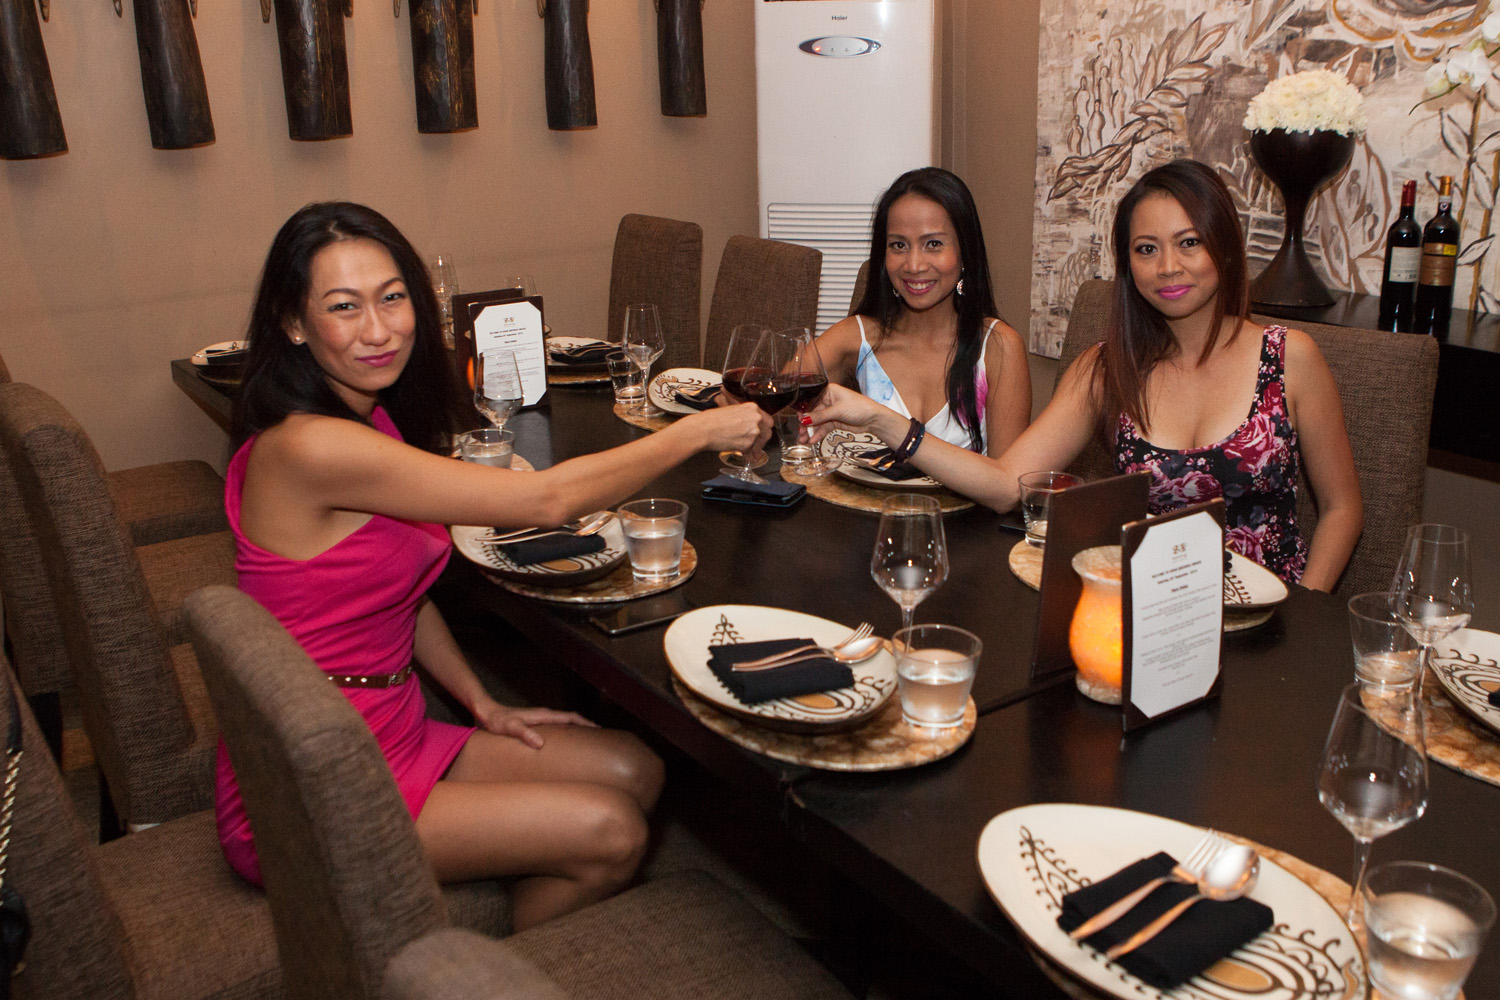 02_Birthday Dinner @Sarong 2015-09-26